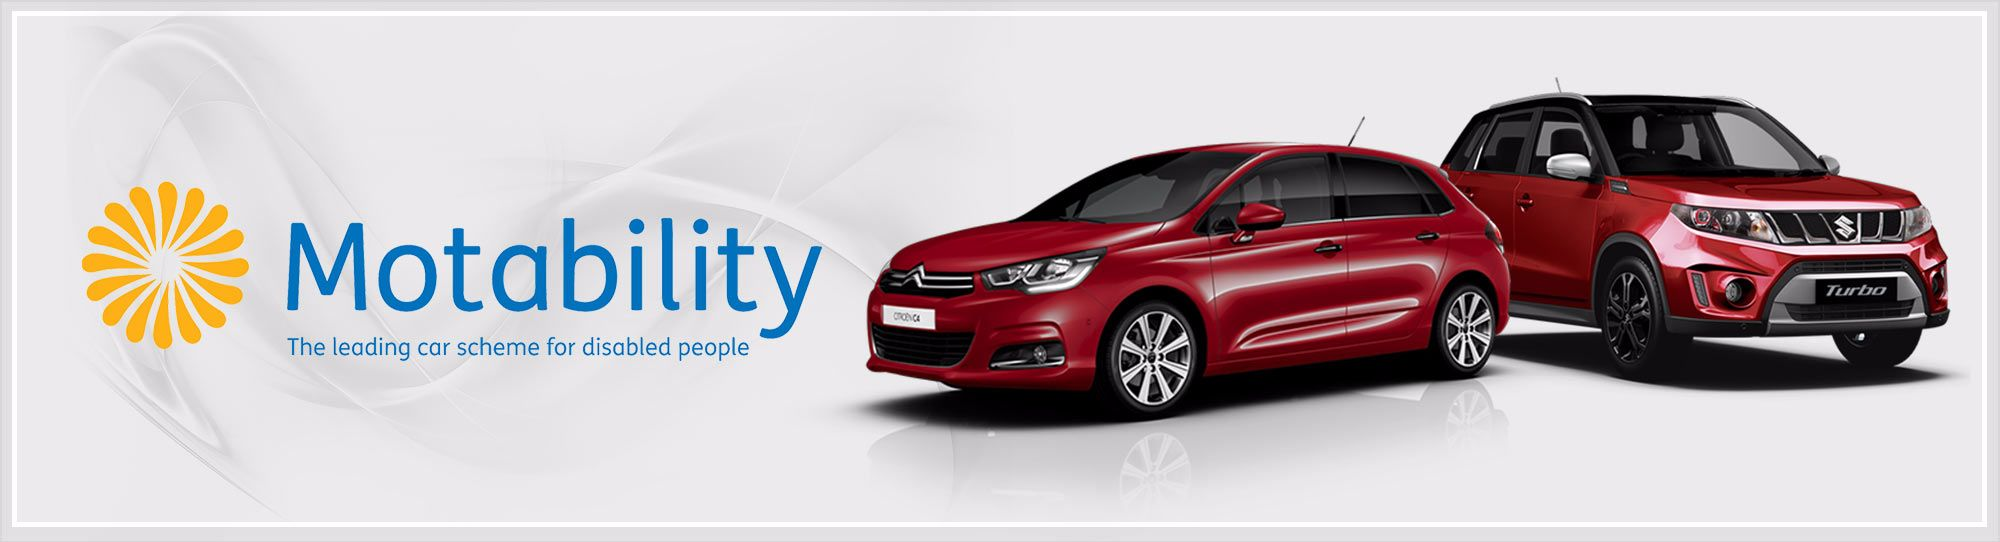 Motability at GT Garages